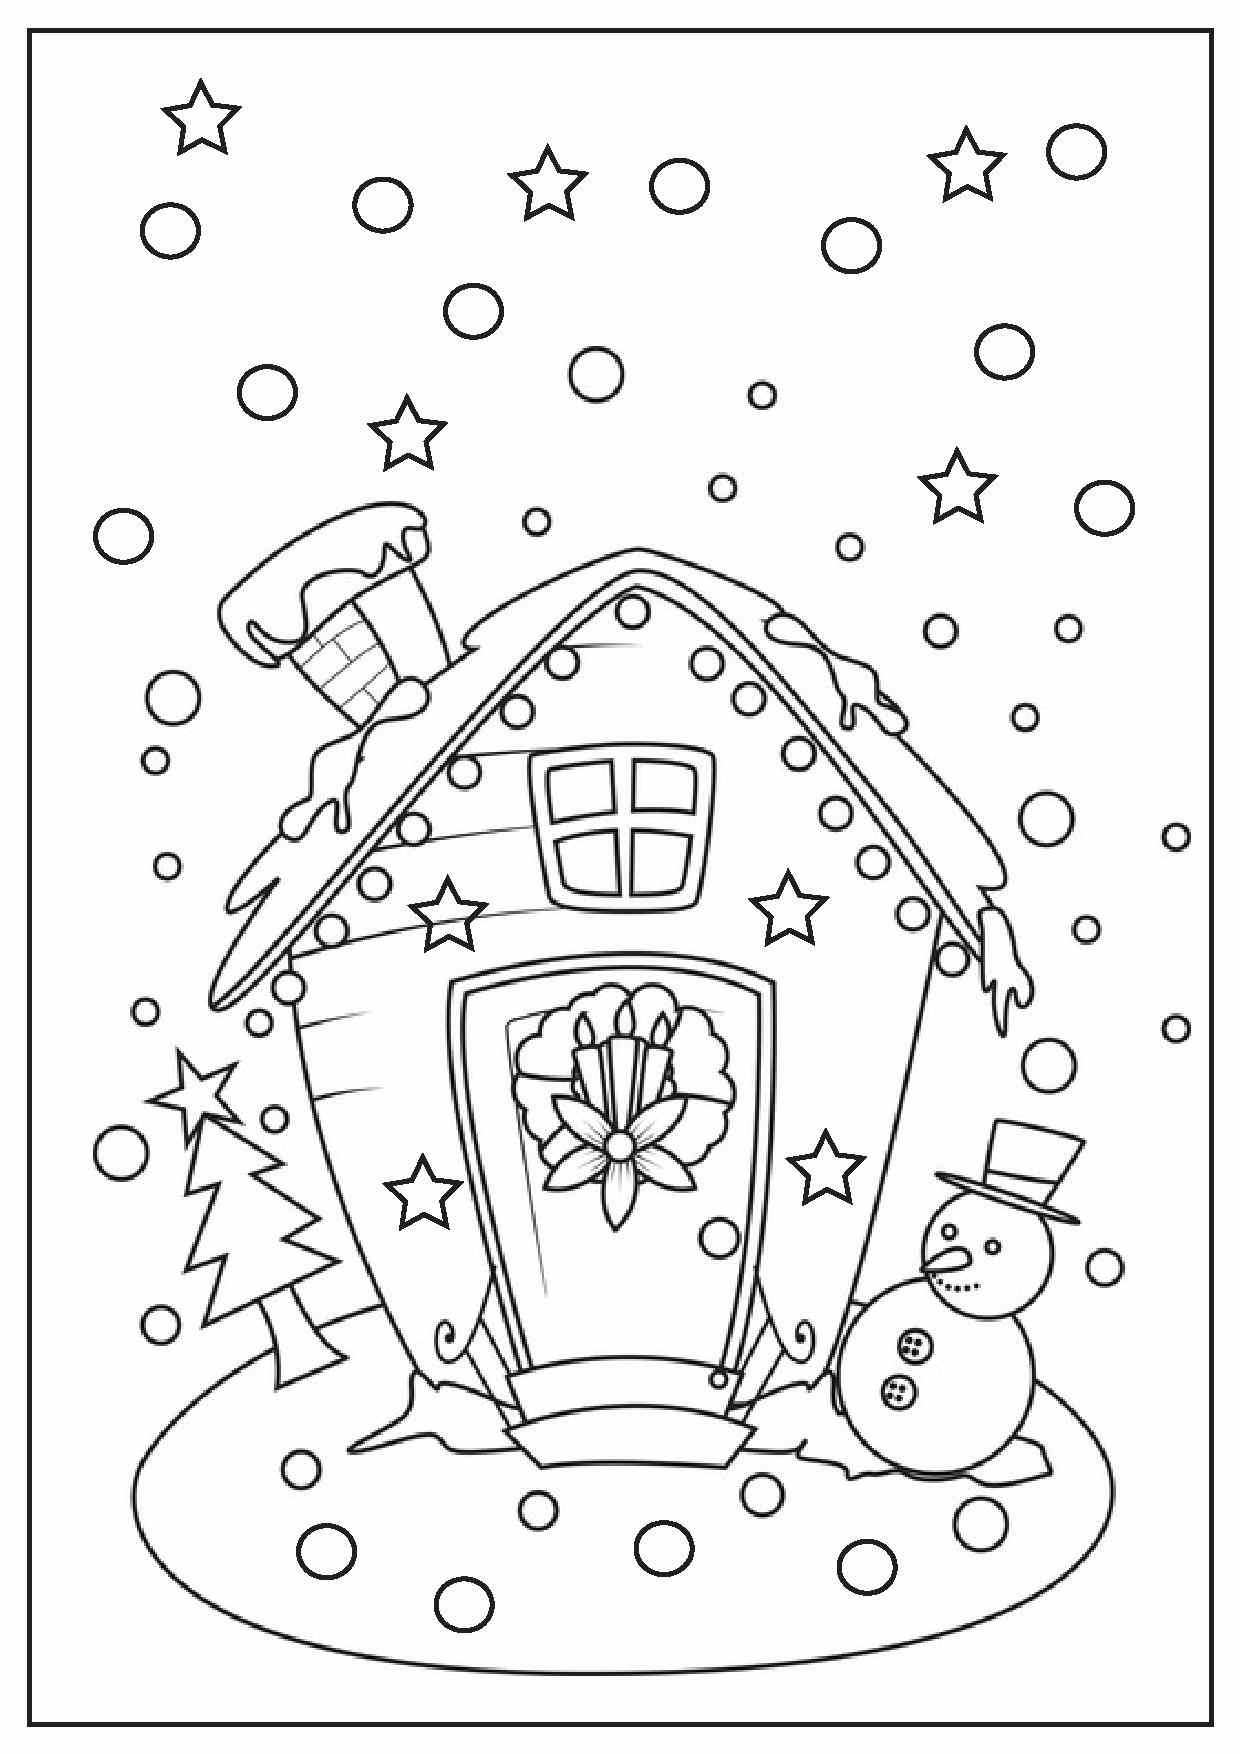 Printable Science Lab Coloring Pages - Coloring Home